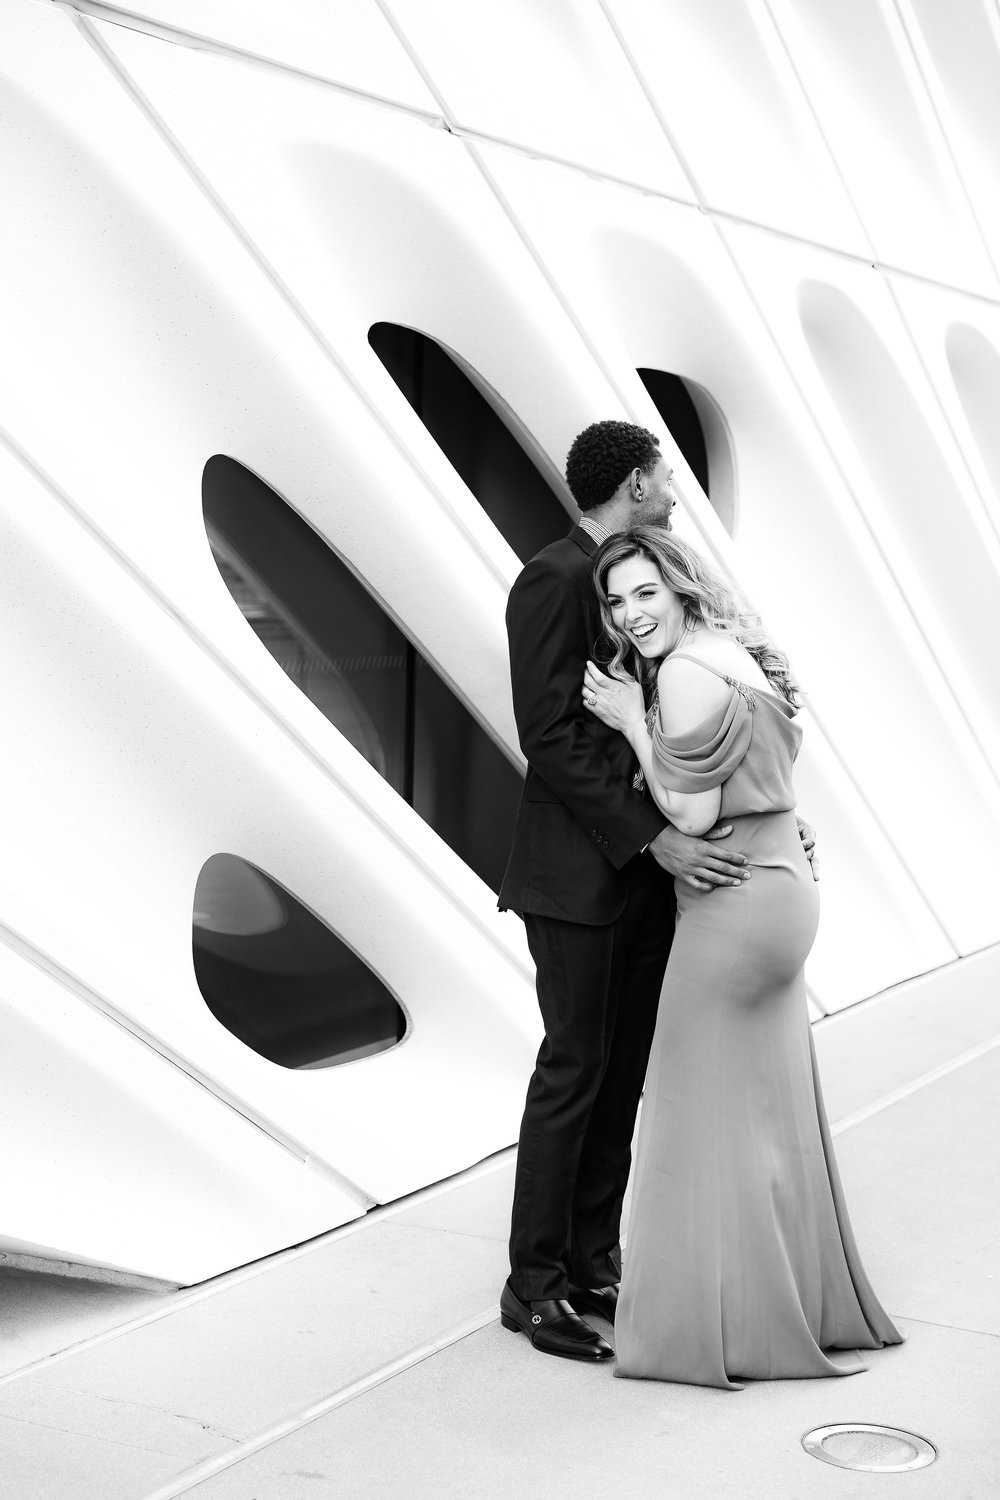 Black and white engagement photos at Disney Concert Hall.  Danielle Ghaffari and CJ Watson.  Engagement Photos in downtown LA.   Luxury Wedding Planner Andrea Eppolito, with images by Brian Leahy.